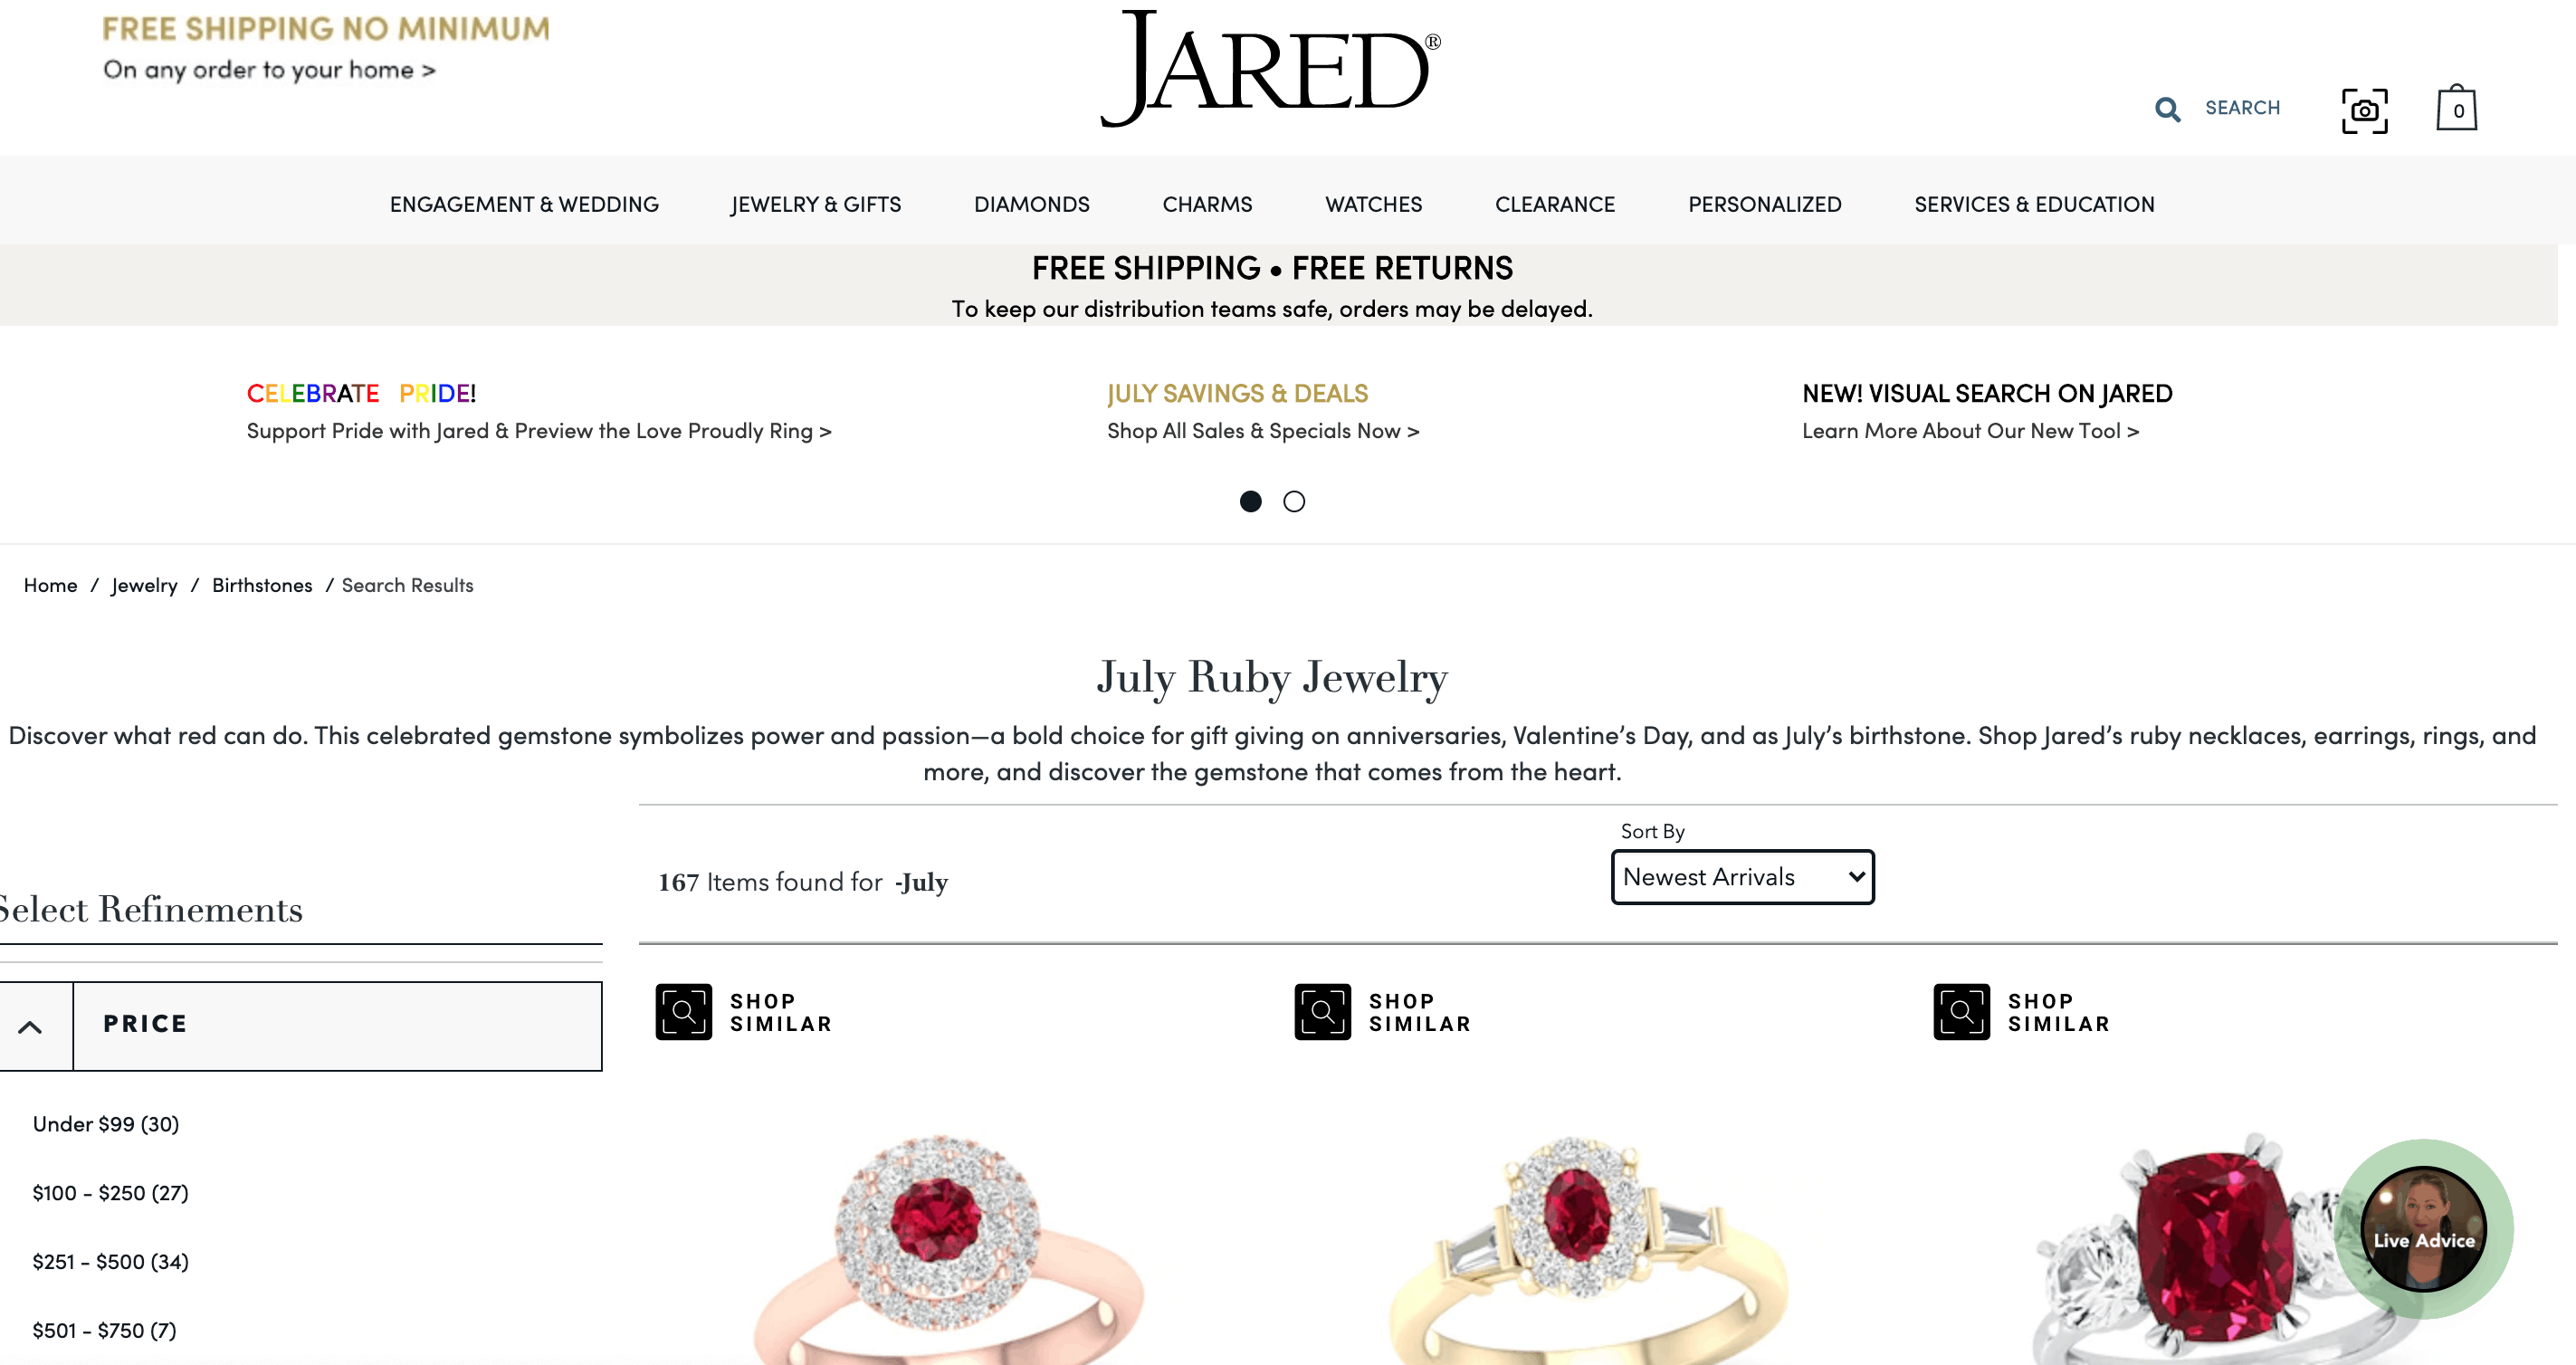 jared red ruby jewelry